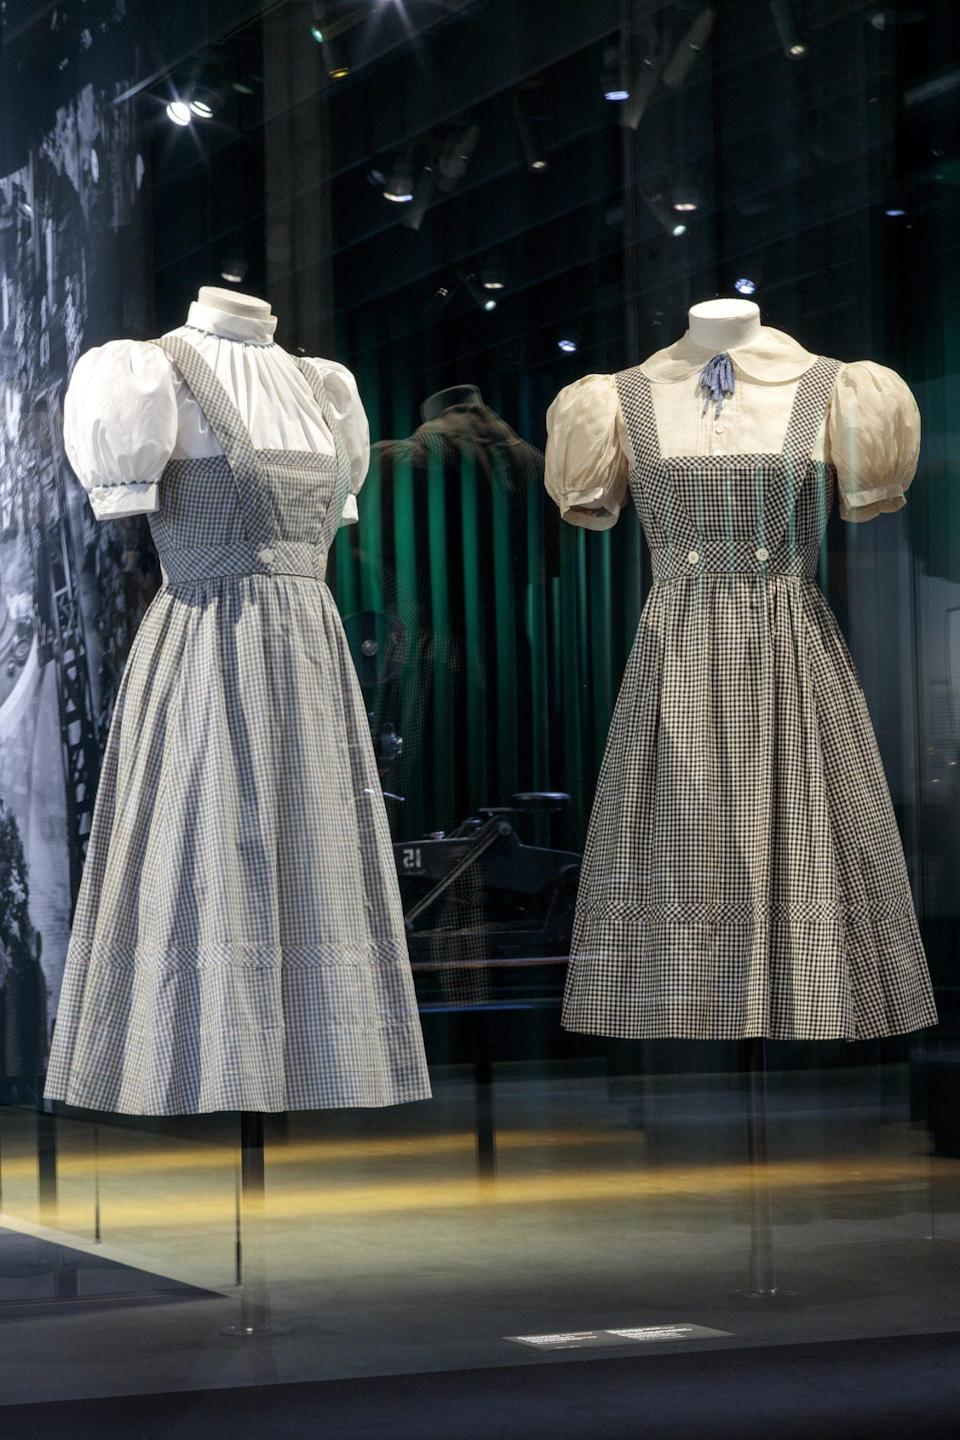 <p>Her blue dresses are on display, too. </p>